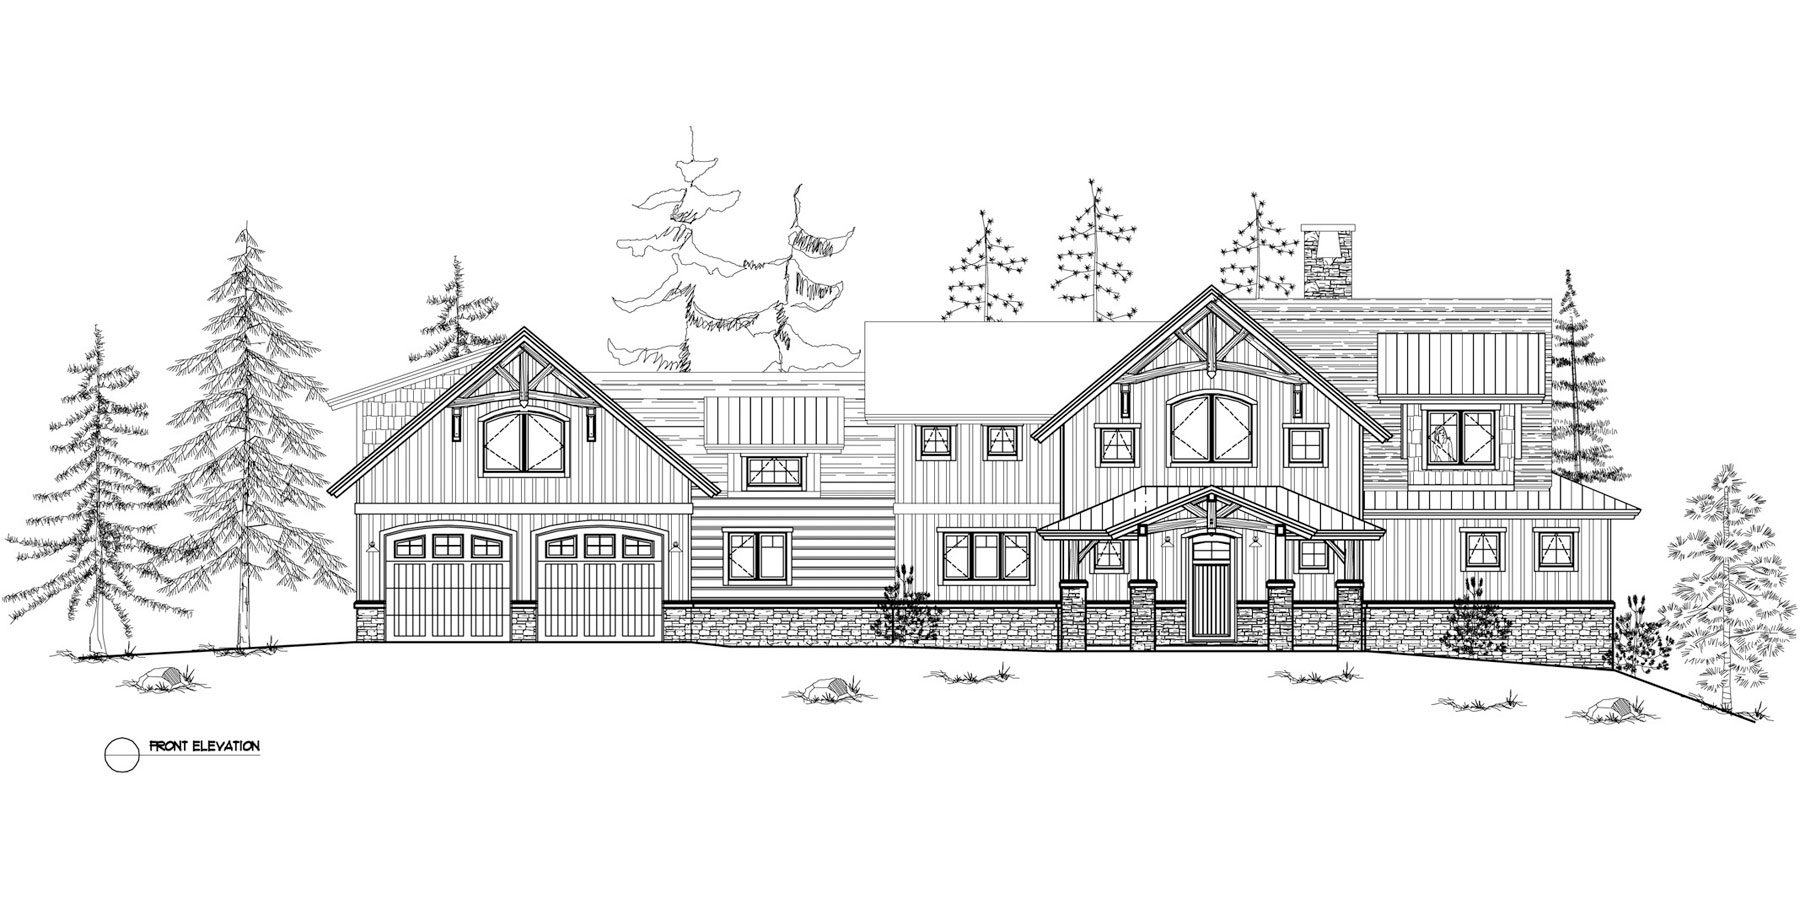 Normerica Timber Frames, House Plan, The Dufferin 3512, Front Elevation